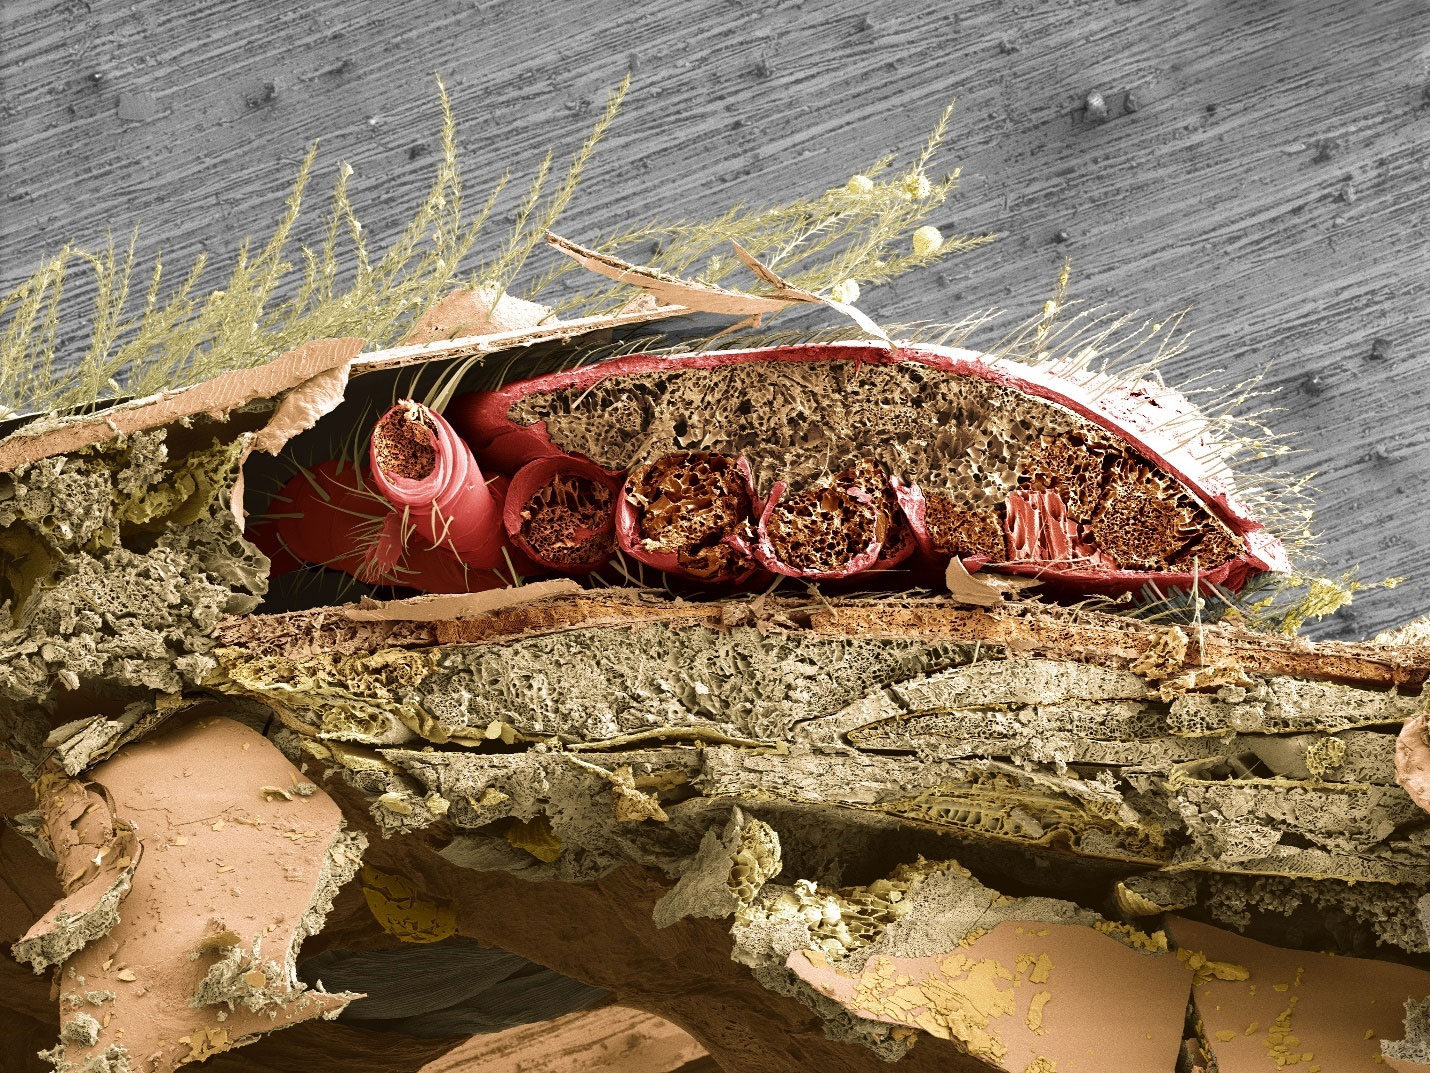 In this cross-section of a honey bee's abdomen, a parasitic varroa mite (pink/orange) can be seen lodged between the bee's abdominal plates, where the mite feeds on honey bee fat body tissue. Image credit: UMD/USDA/PNAS (Click image to download hi-res version.)